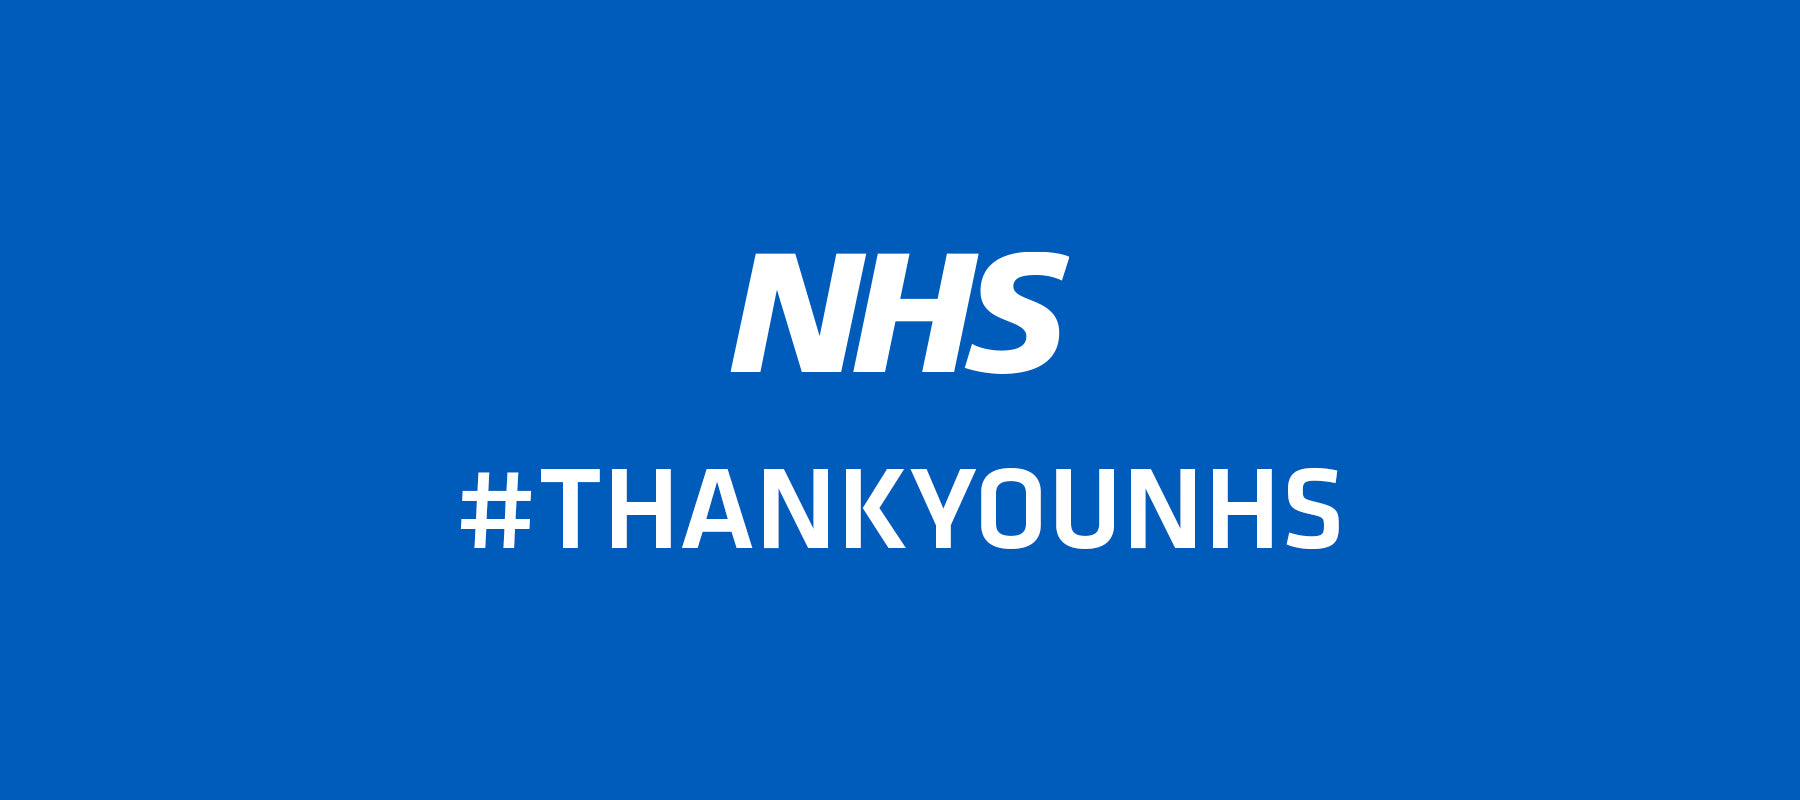 A huge thank you to our very own NHS for all of your incredible work